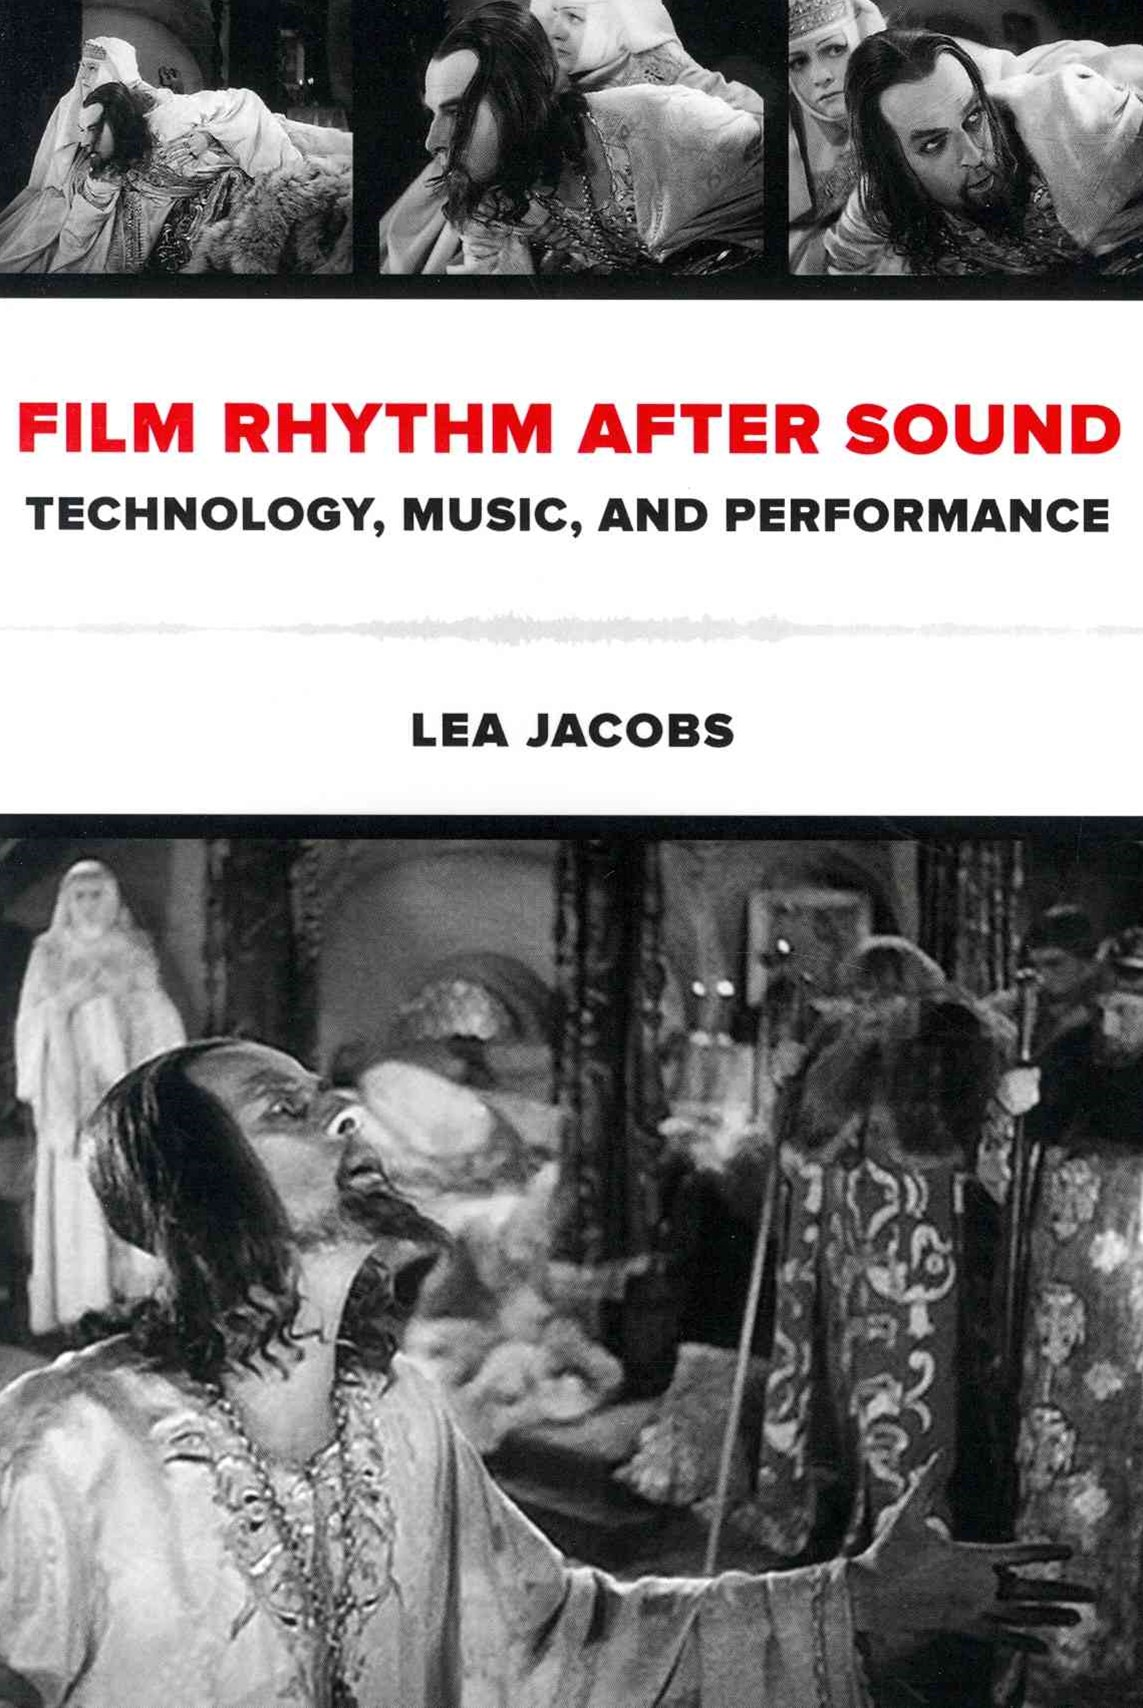 Film Rhythm After Sound